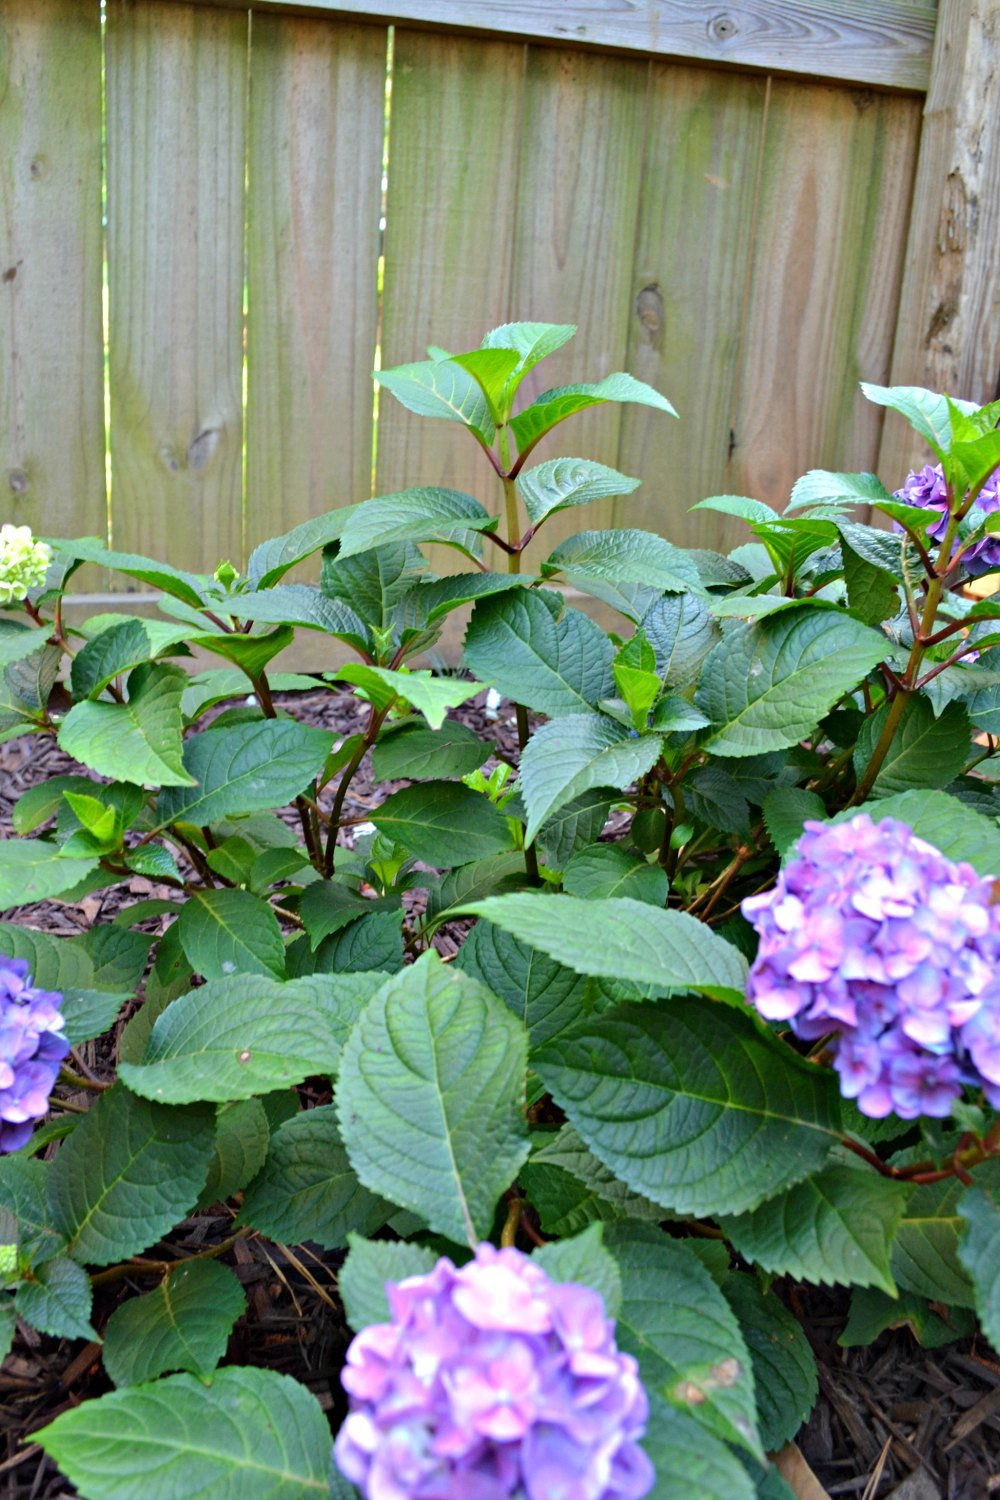 hydrangea blooms - purple mophead blooms with red stems